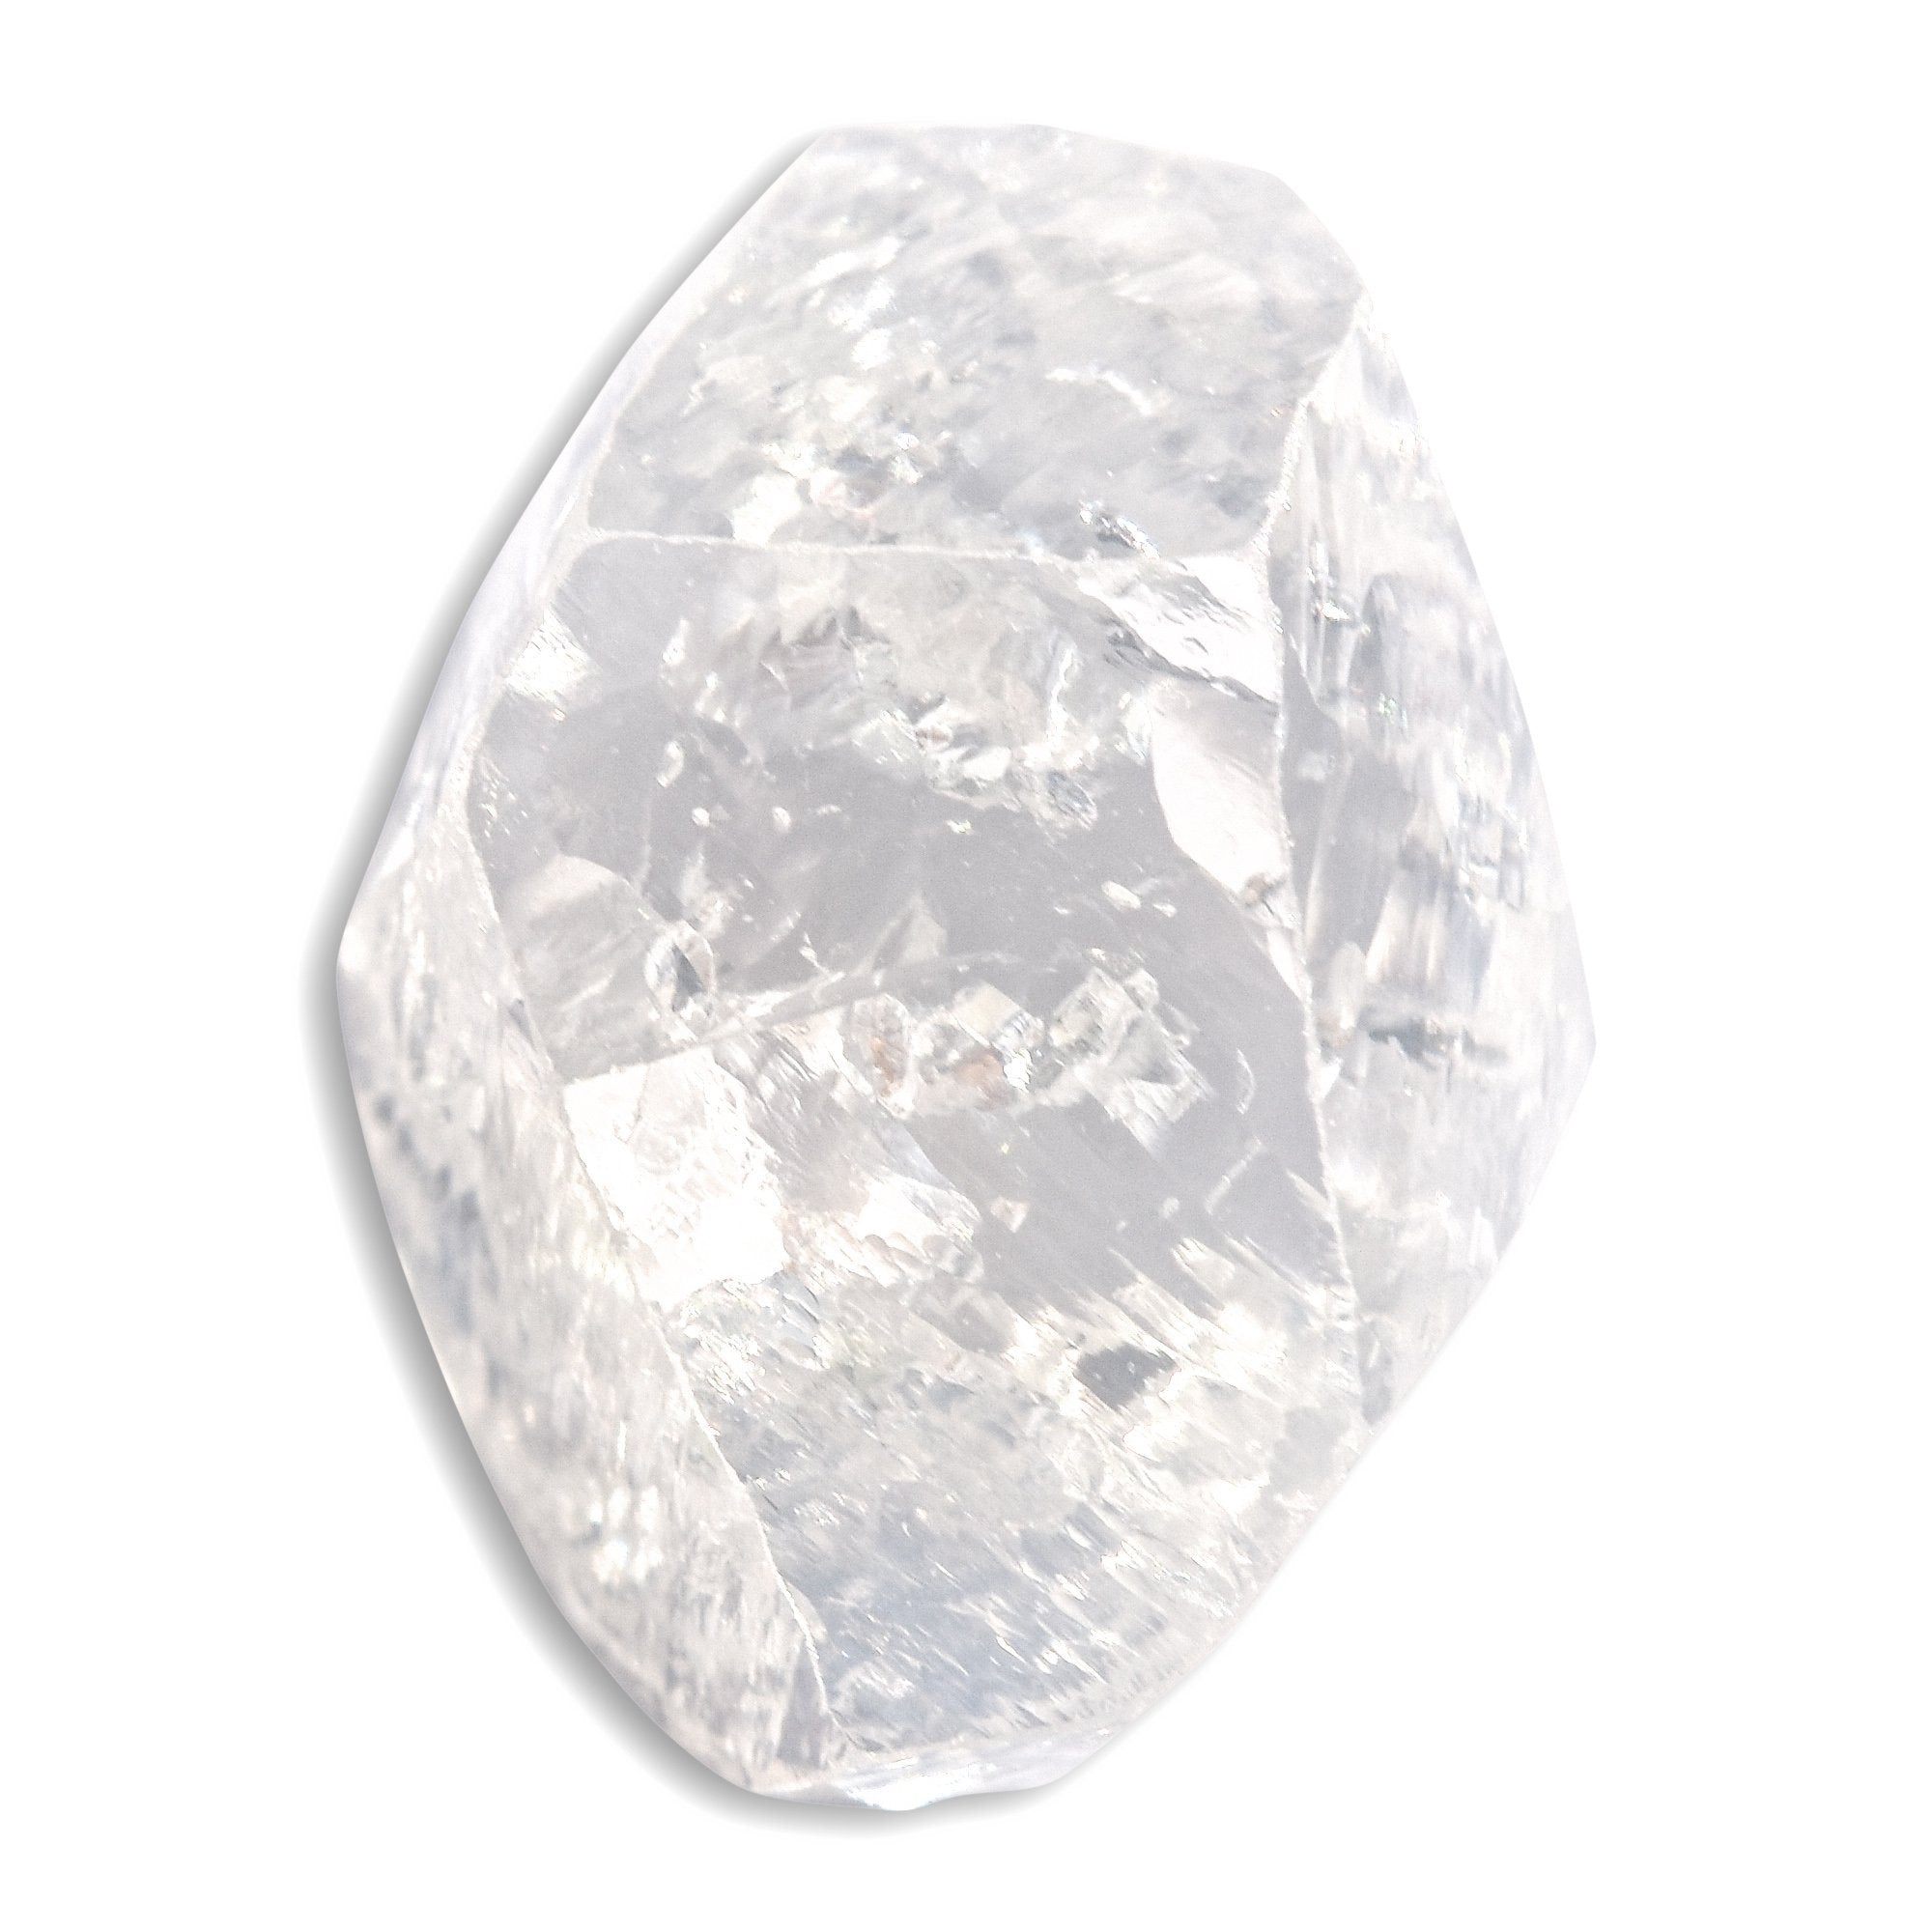 2.10 carat oblong bright white rough diamond freeform crystal Raw Diamond South Africa